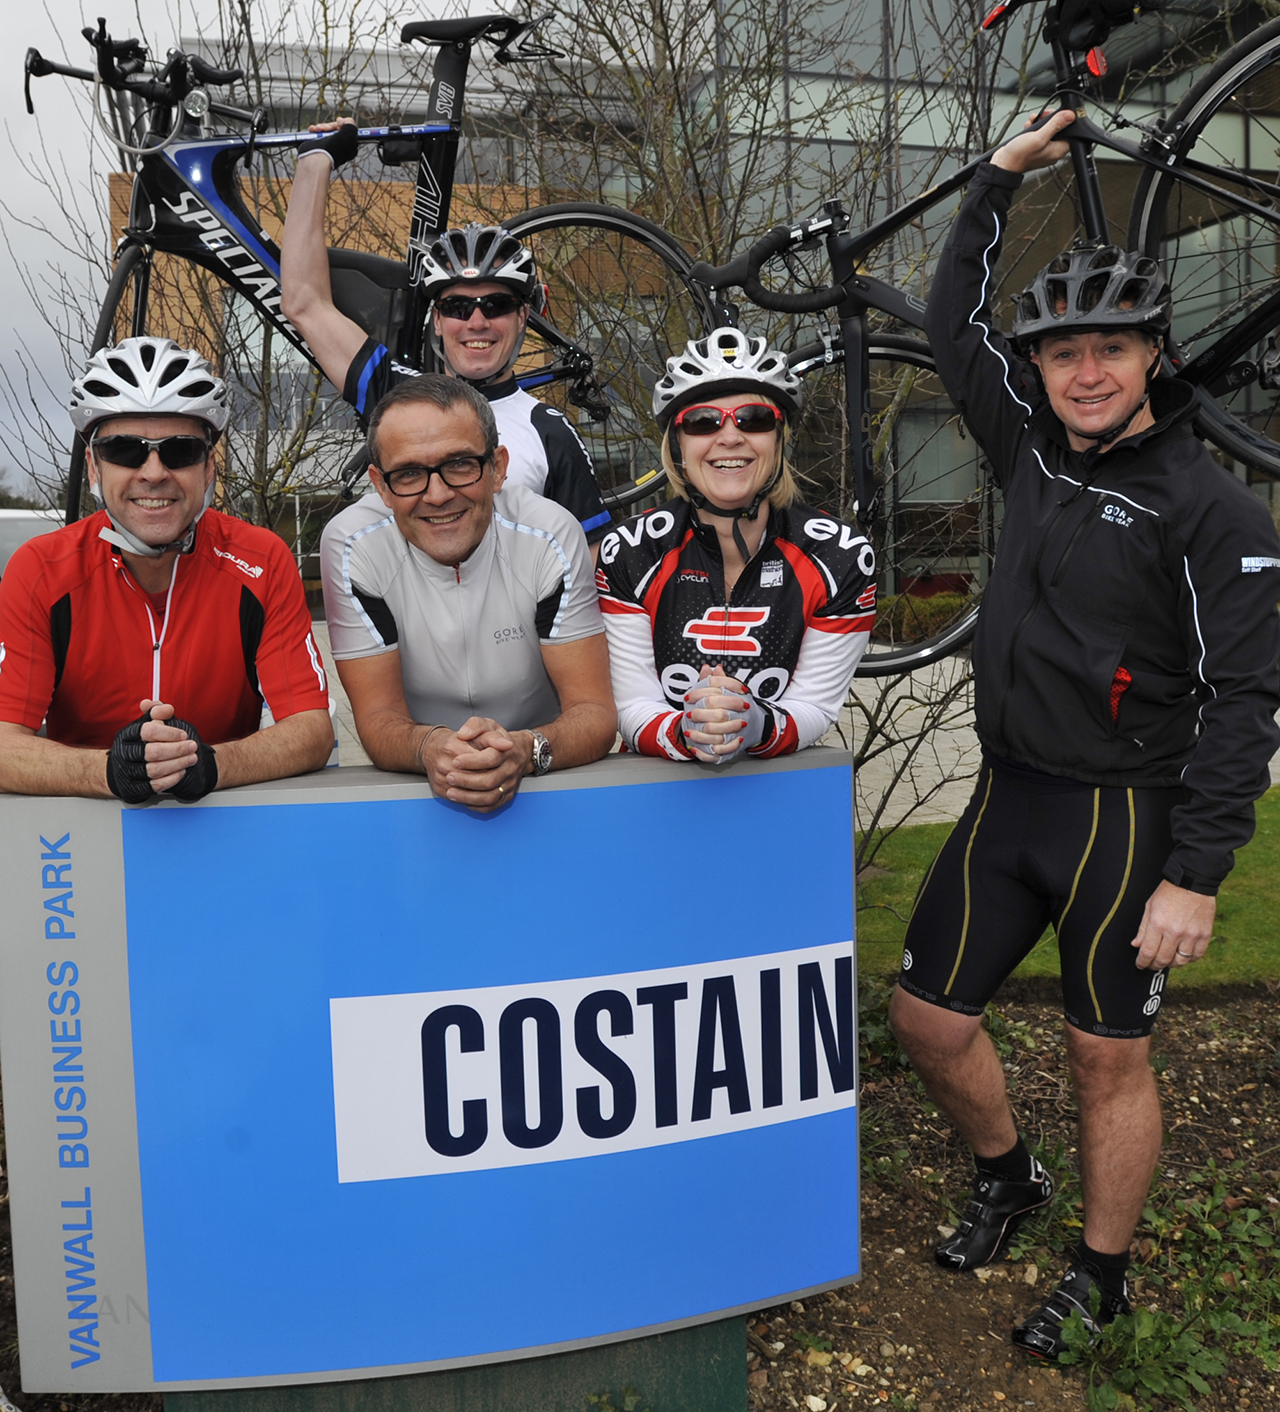 Ironman Challenge For Costain